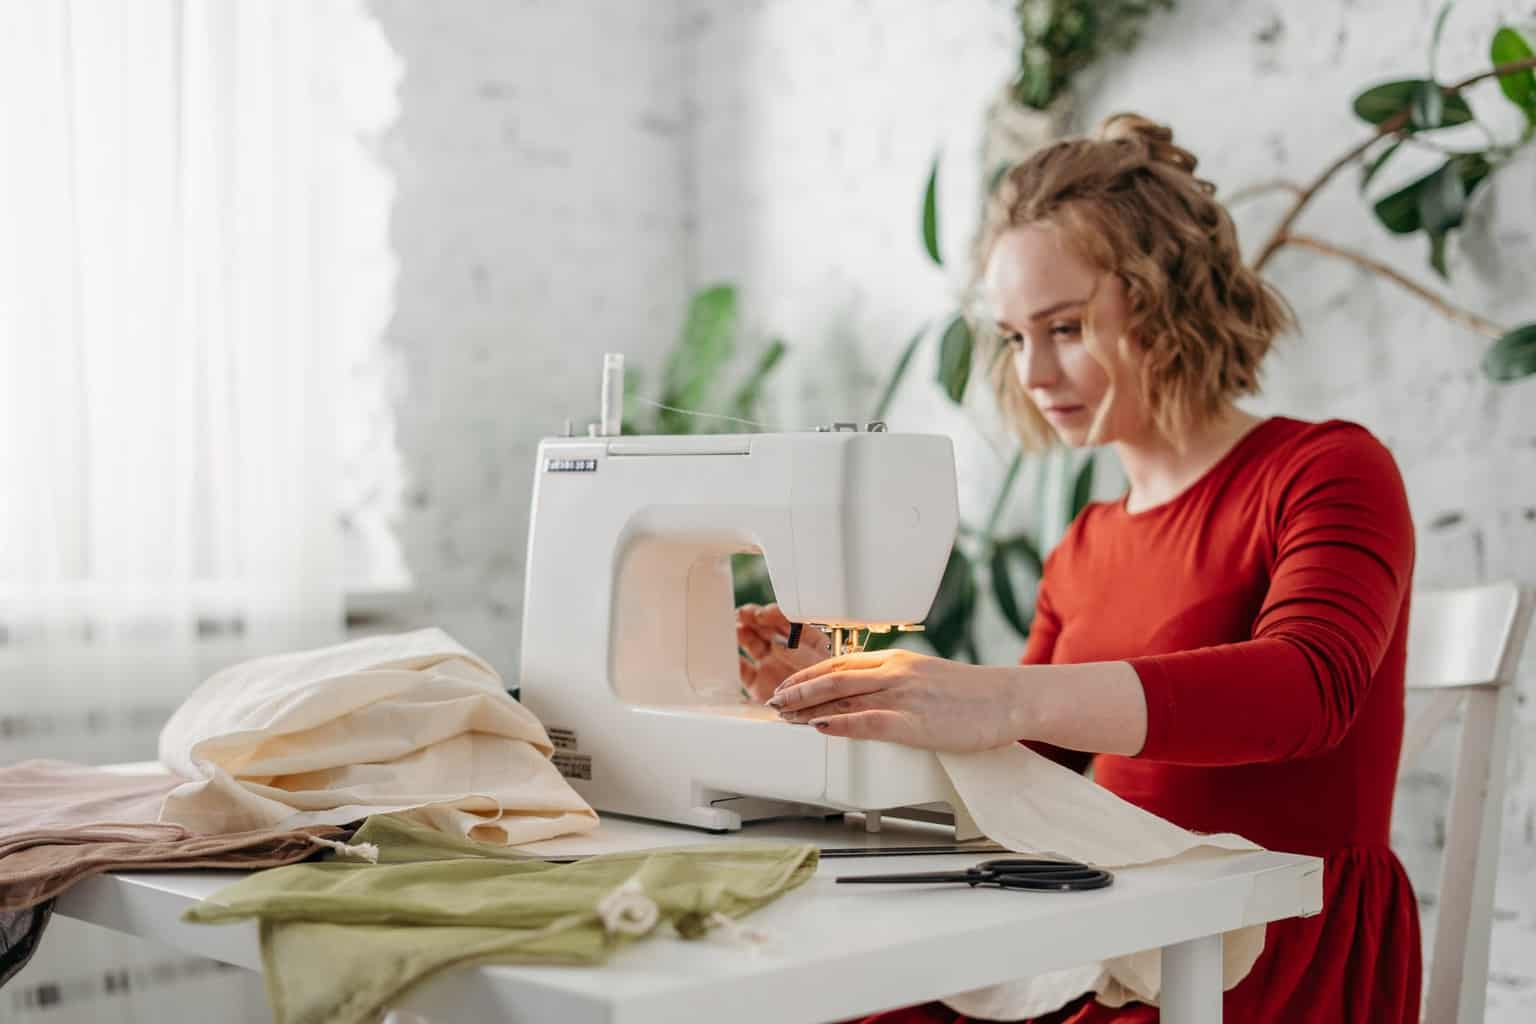 woman sewing while sitting on chair